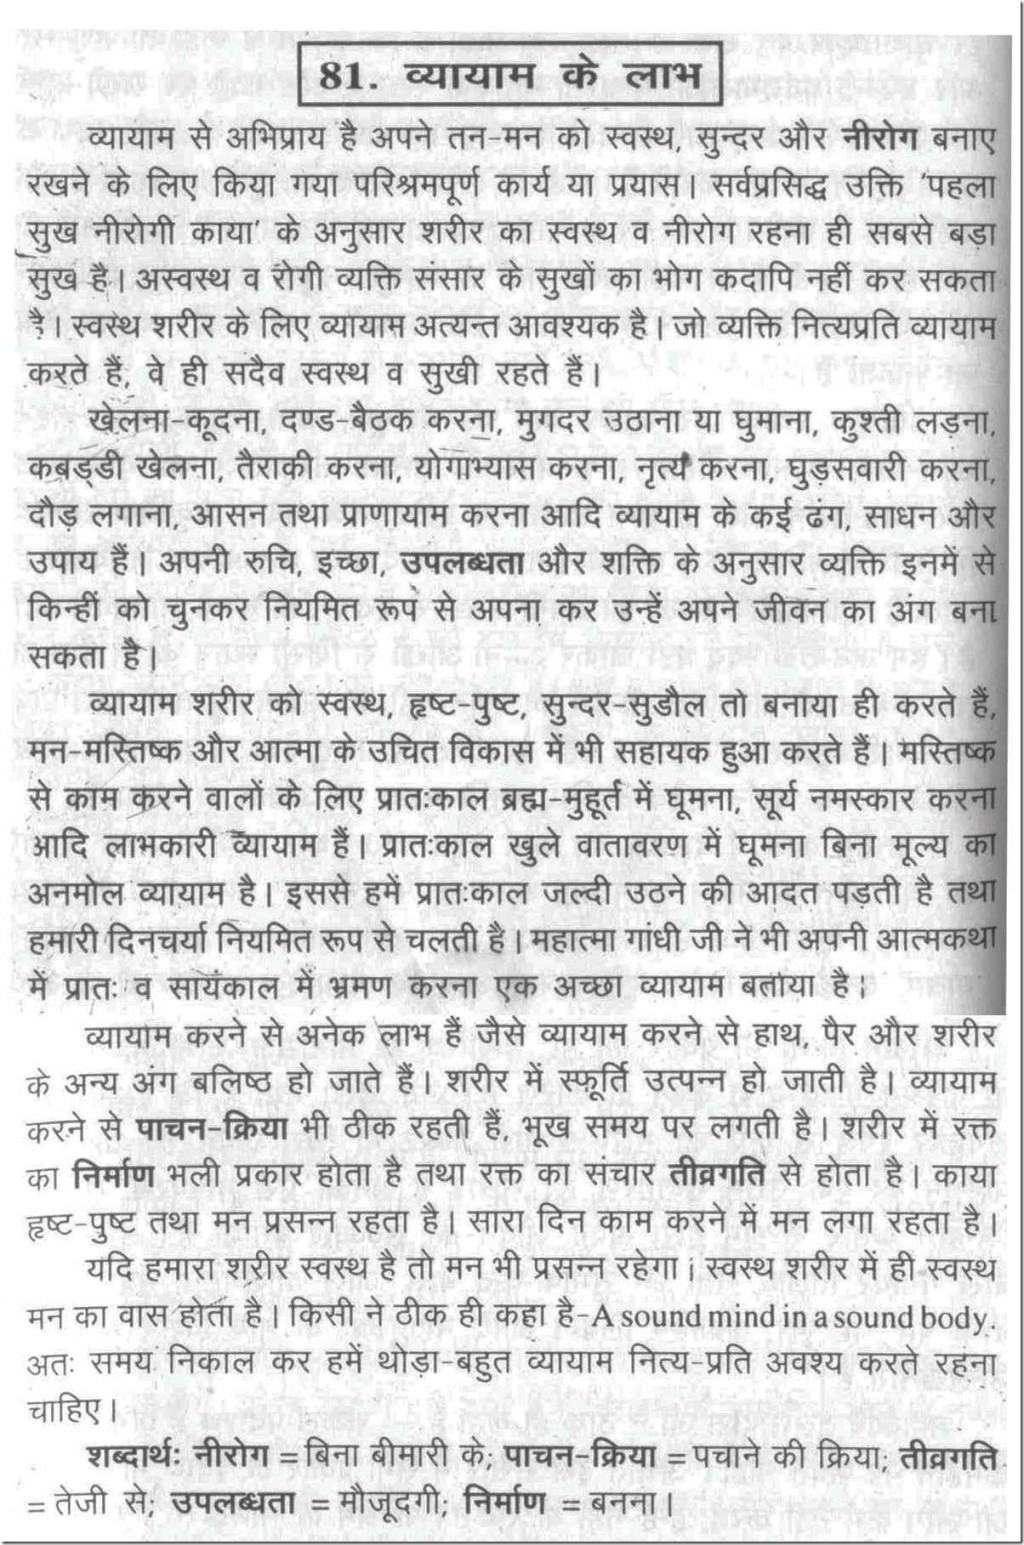 011 2563478896 Essay On Health And Fitness Through Food Good Habits In Hindi Exceptional Habit Large